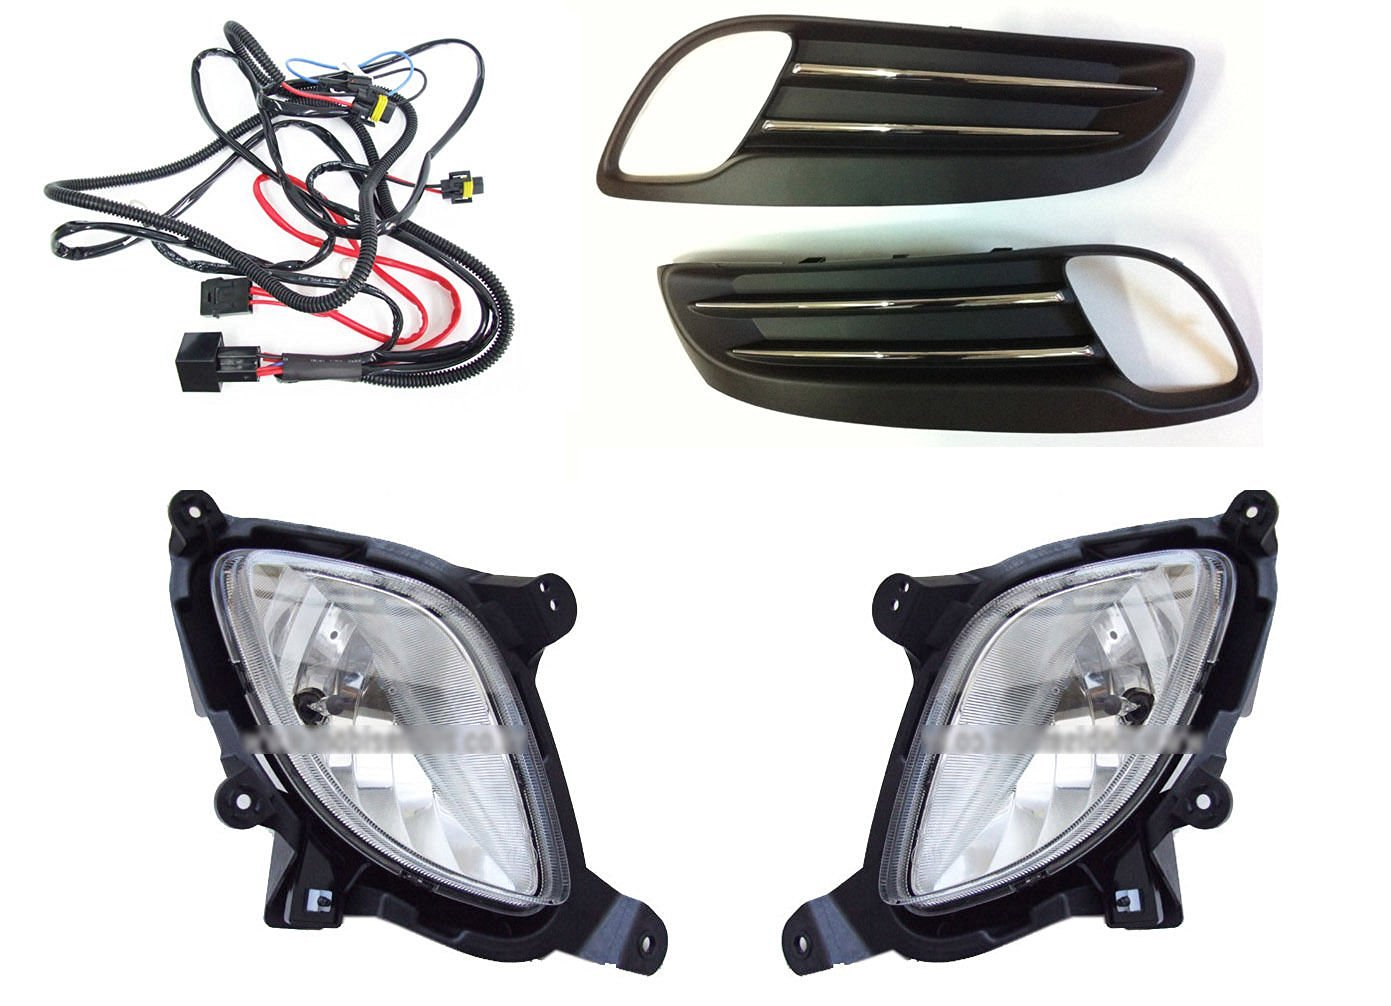 hight resolution of  sell by automotiveapple hyundai motors oem genuine front lh rh fog lights lamp assembly